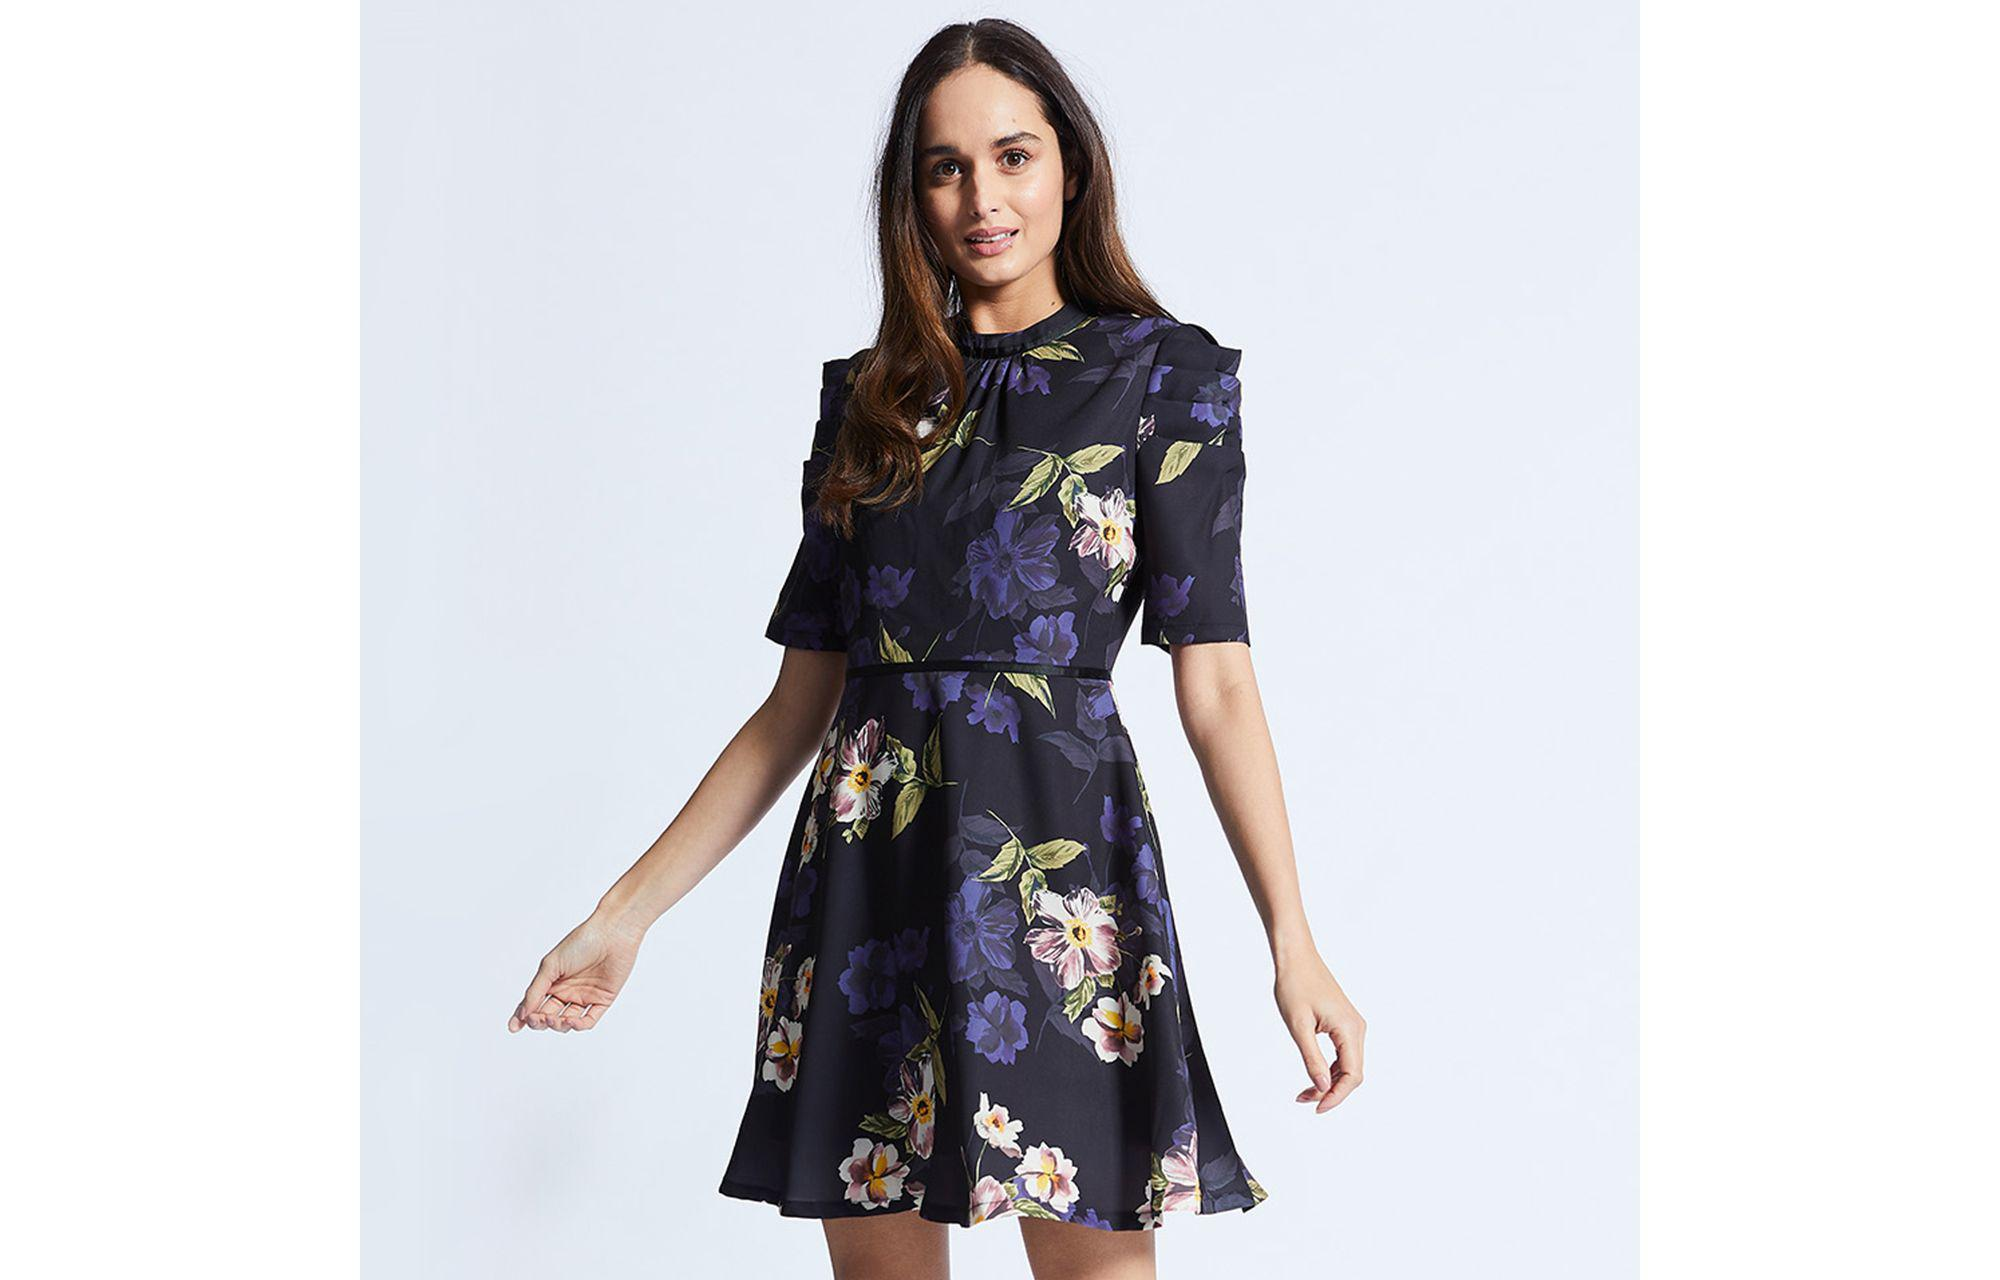 a00a1b6ccd7e Angeleye Navy Floral Dress With Ruffles Half Sleeves in Blue - Lyst